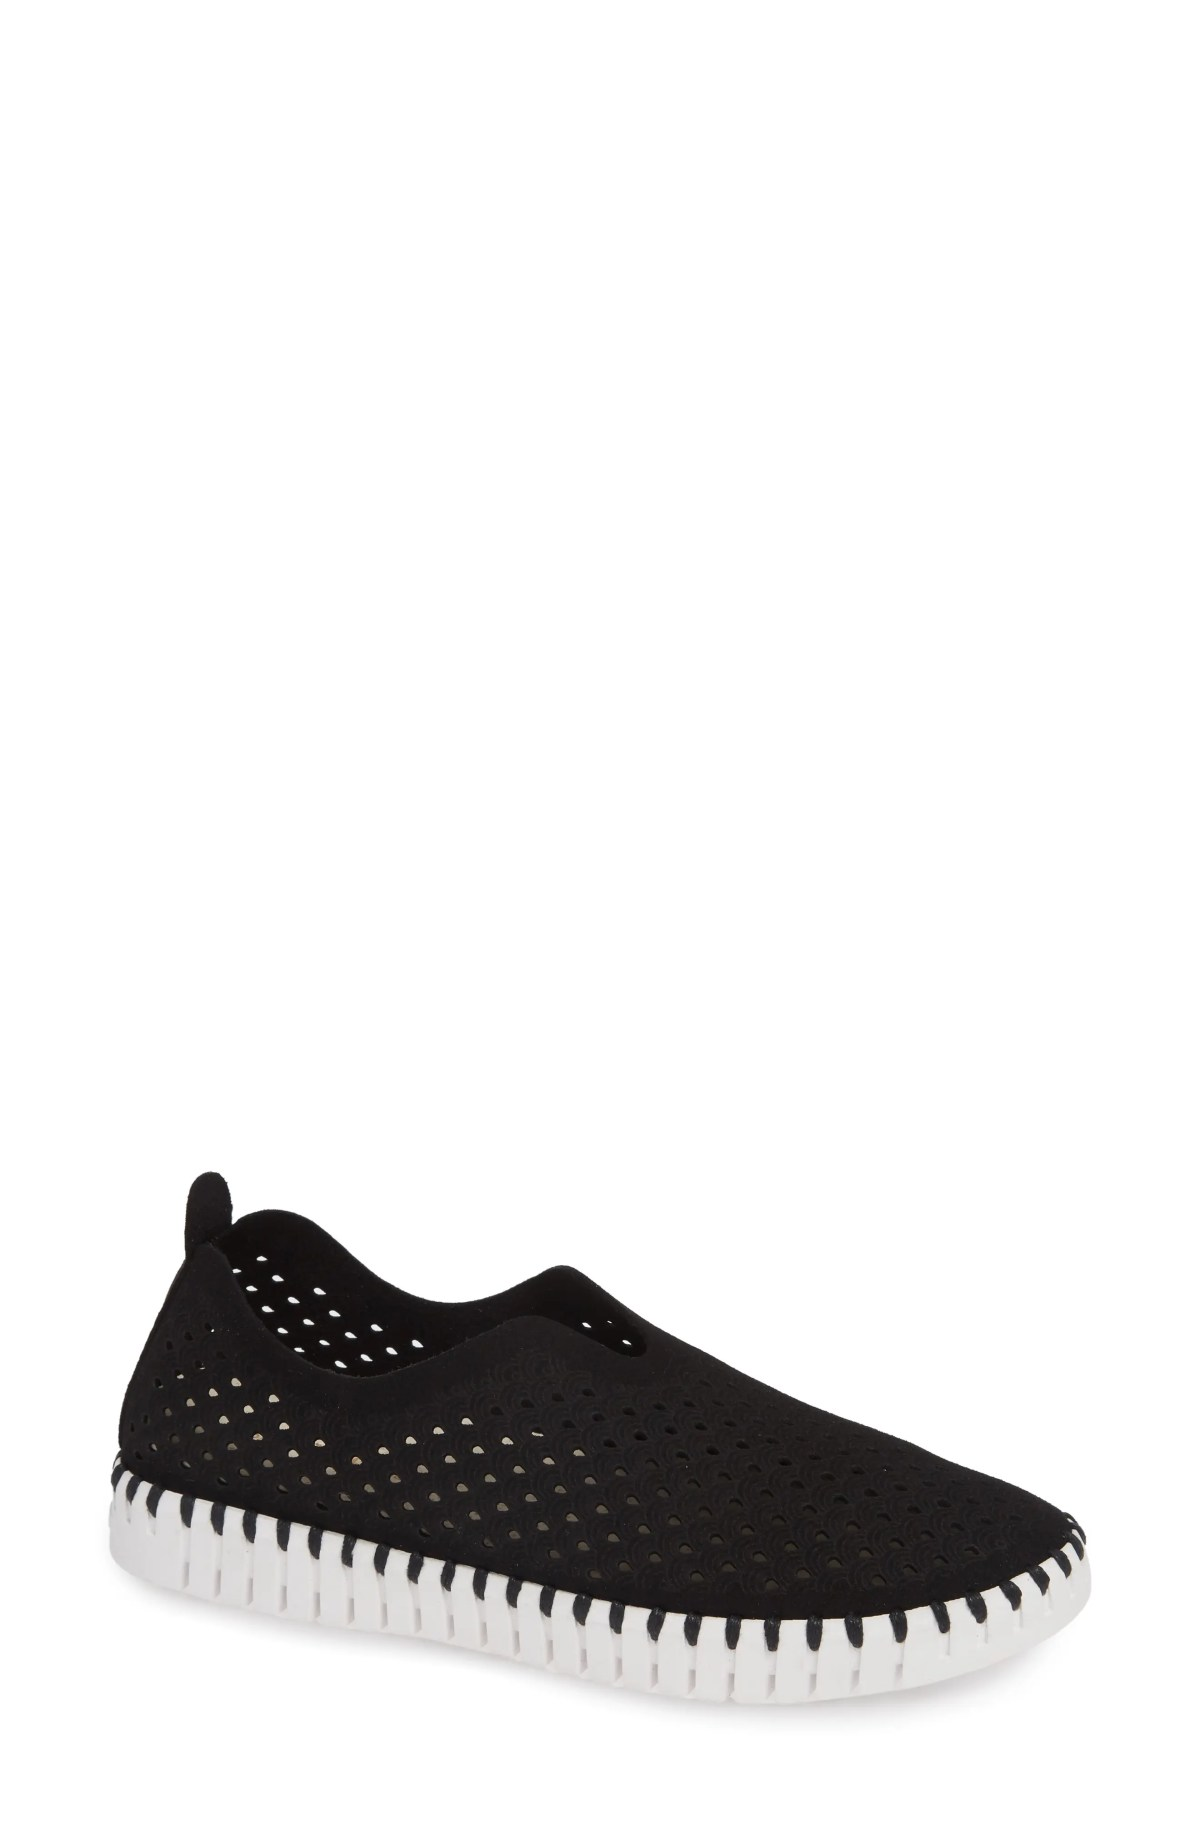 ILSE JACOBSEN Tulip 139 Perforated Slip-On Sneaker, Main, color, BLACK FABRIC